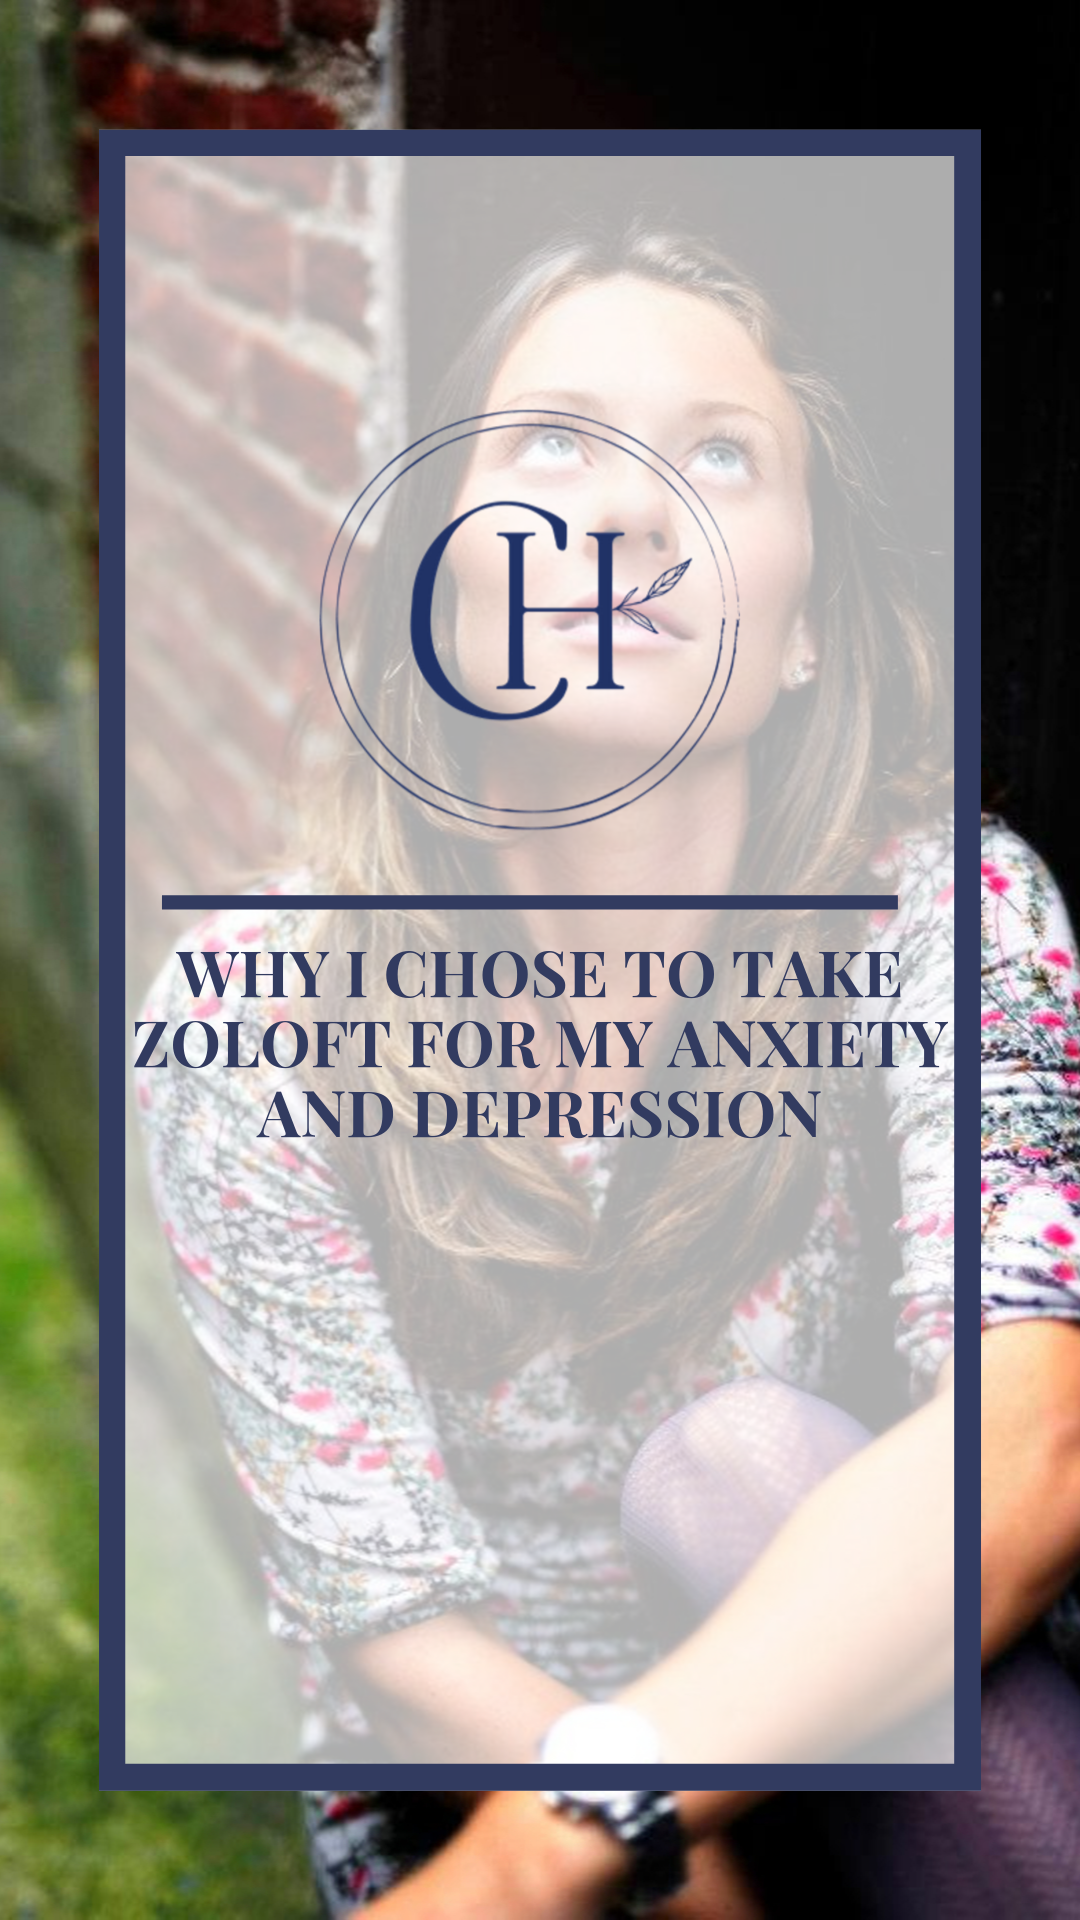 Zoloft for Anxiety and Depression